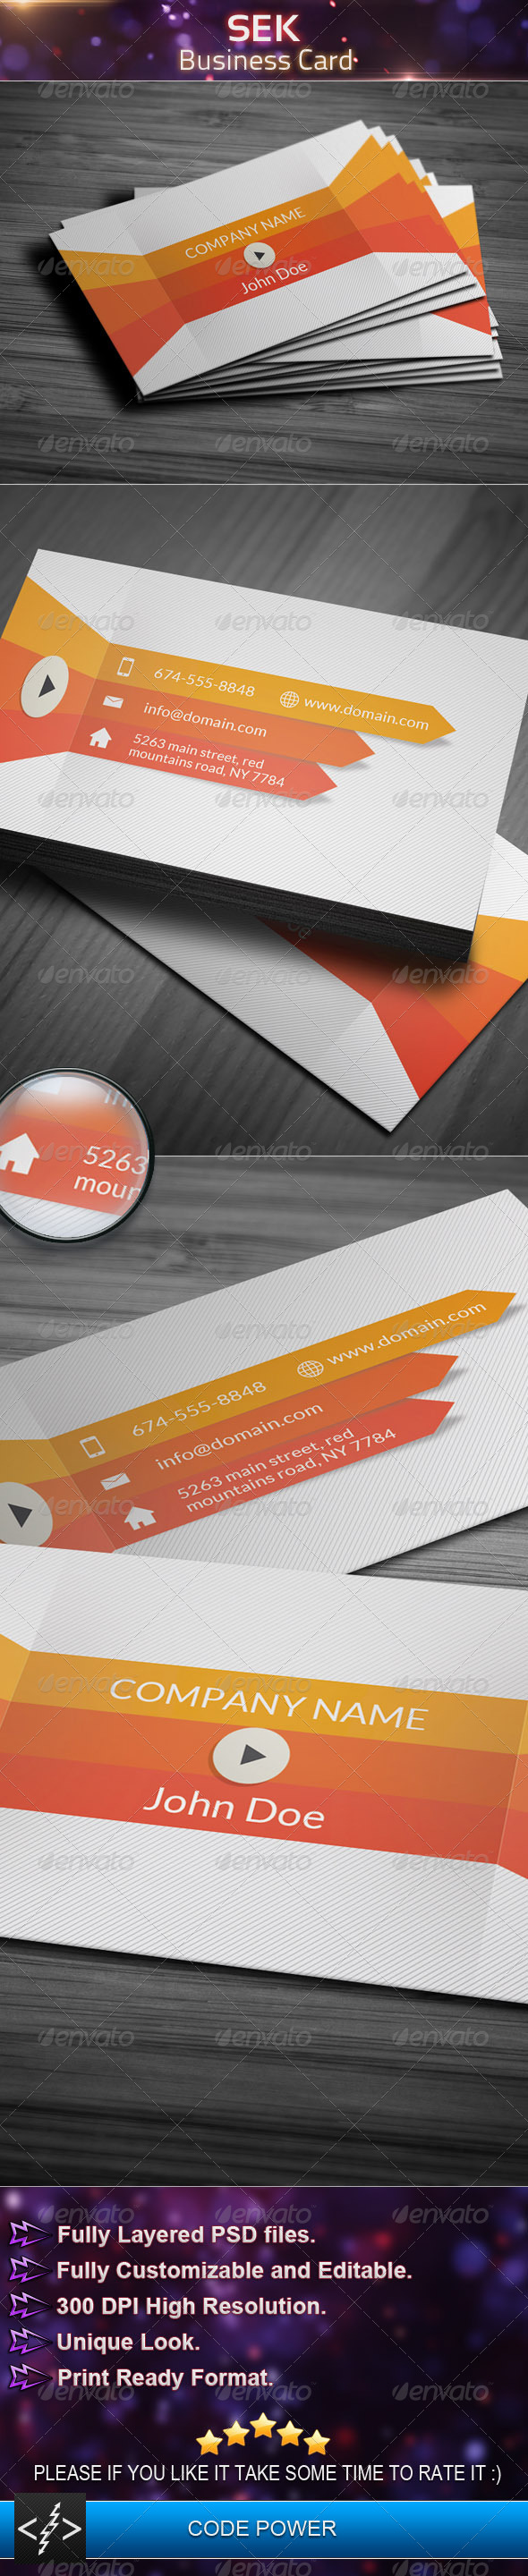 Sek - Business Card - Corporate Business Cards